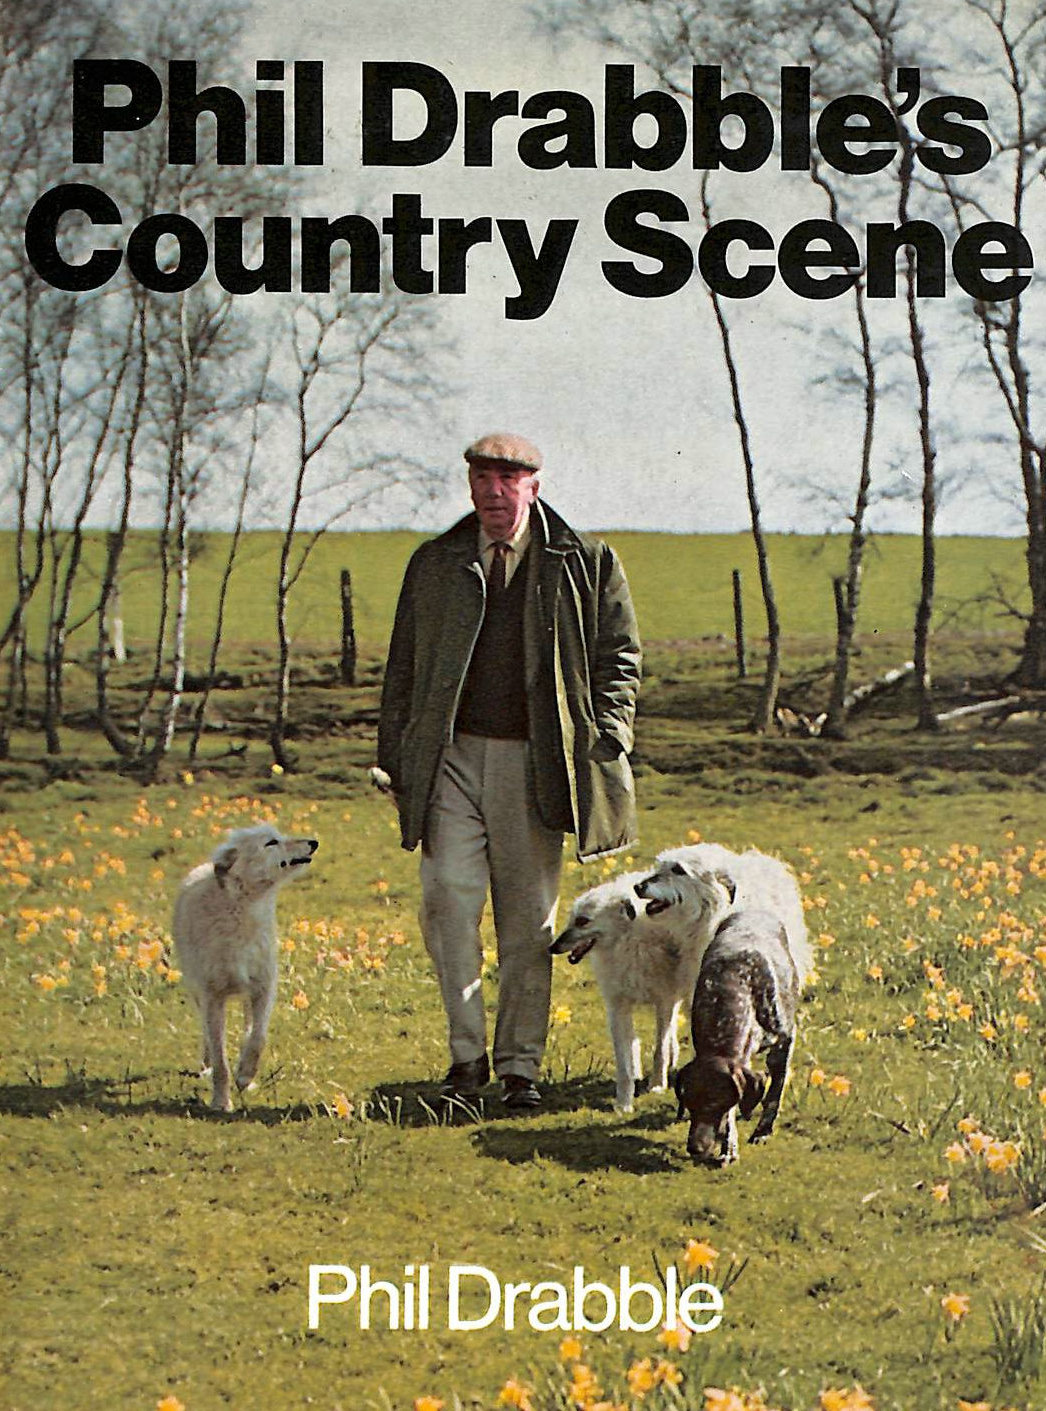 Image for Phil Drabbles Country Scene